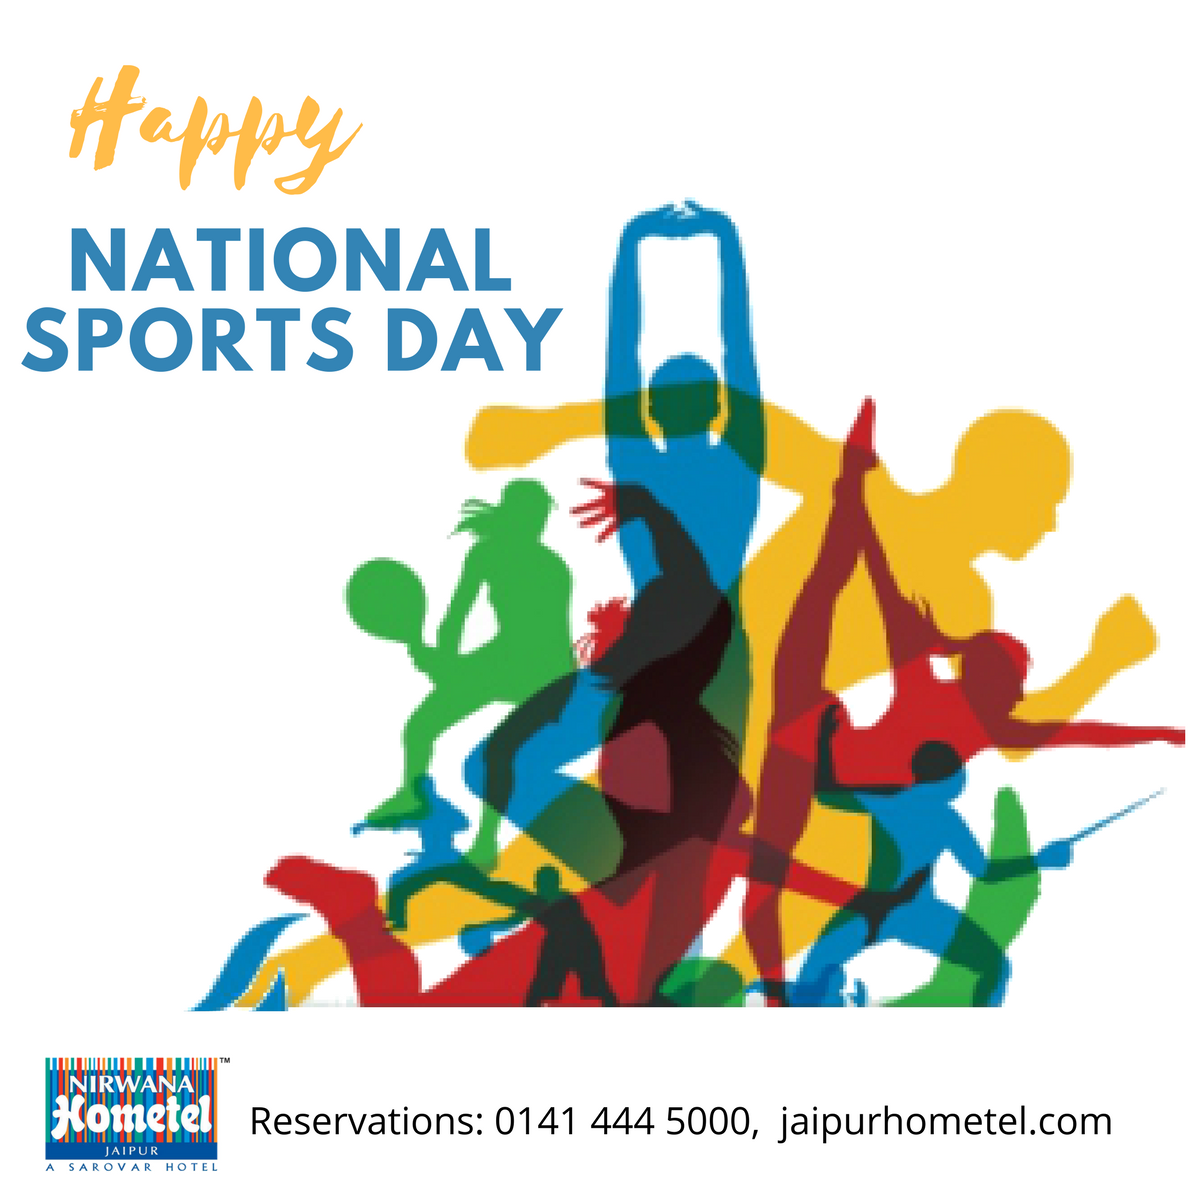 The National Sports Day is observed every year across